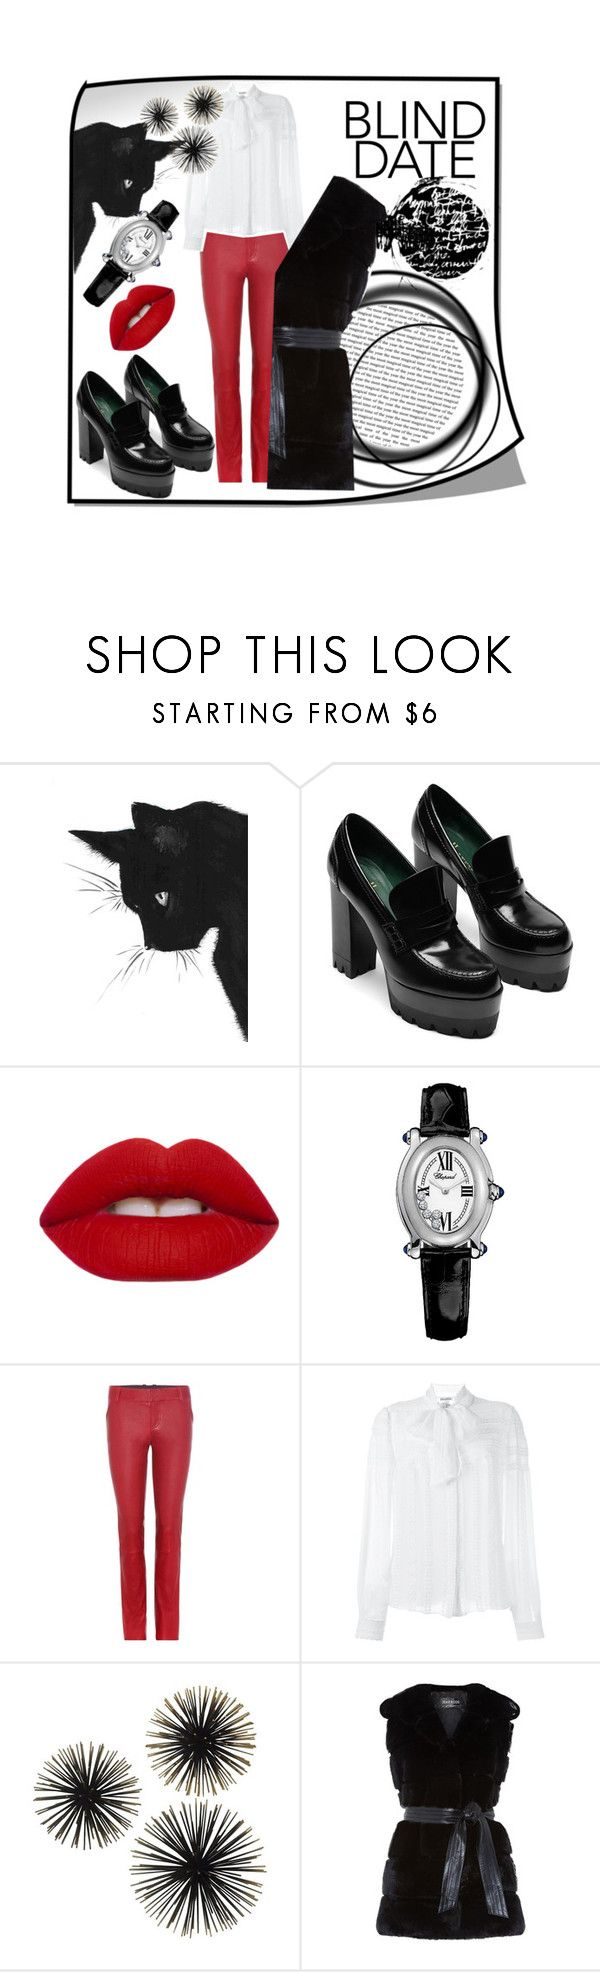 """when in doubt wear red."" by green-eye ❤ liked on Polyvore featuring Lime Crime, Chopard, STOULS, Oscar de la Renta, Harrods, red, Leather, loafers, leggins and chopard"